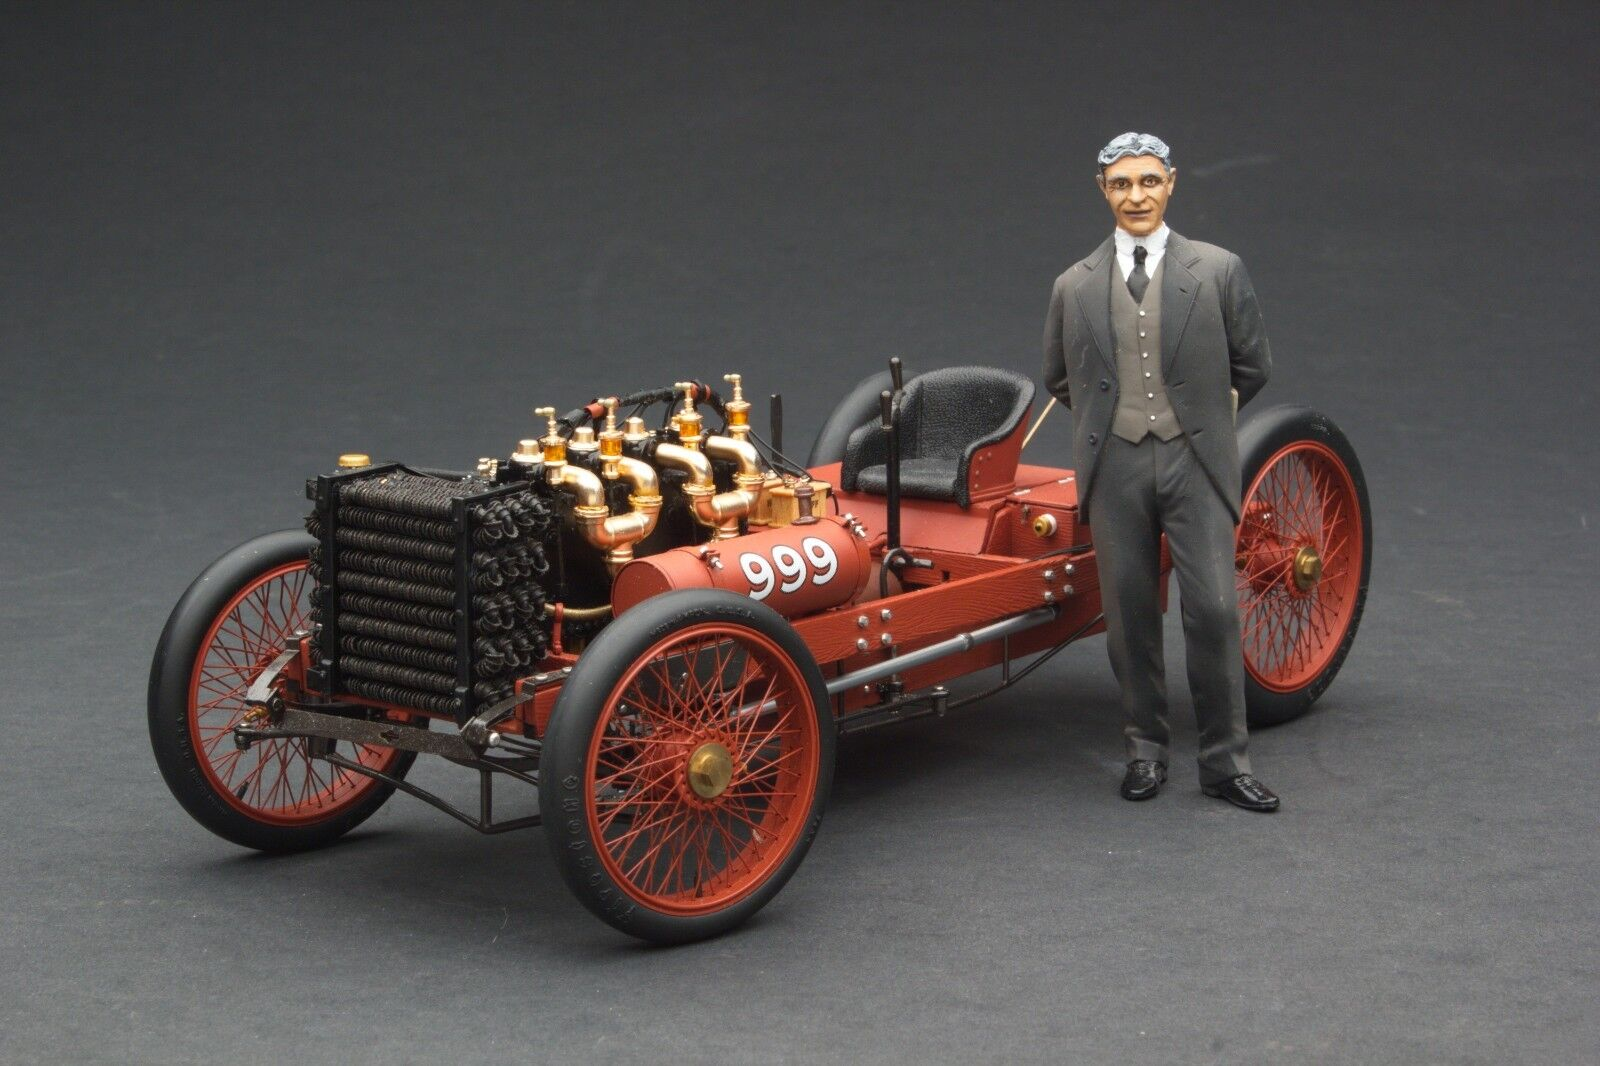 Exoto 1903 Ford 999   Henry Ford  Échelle 1 18    RLG88040F